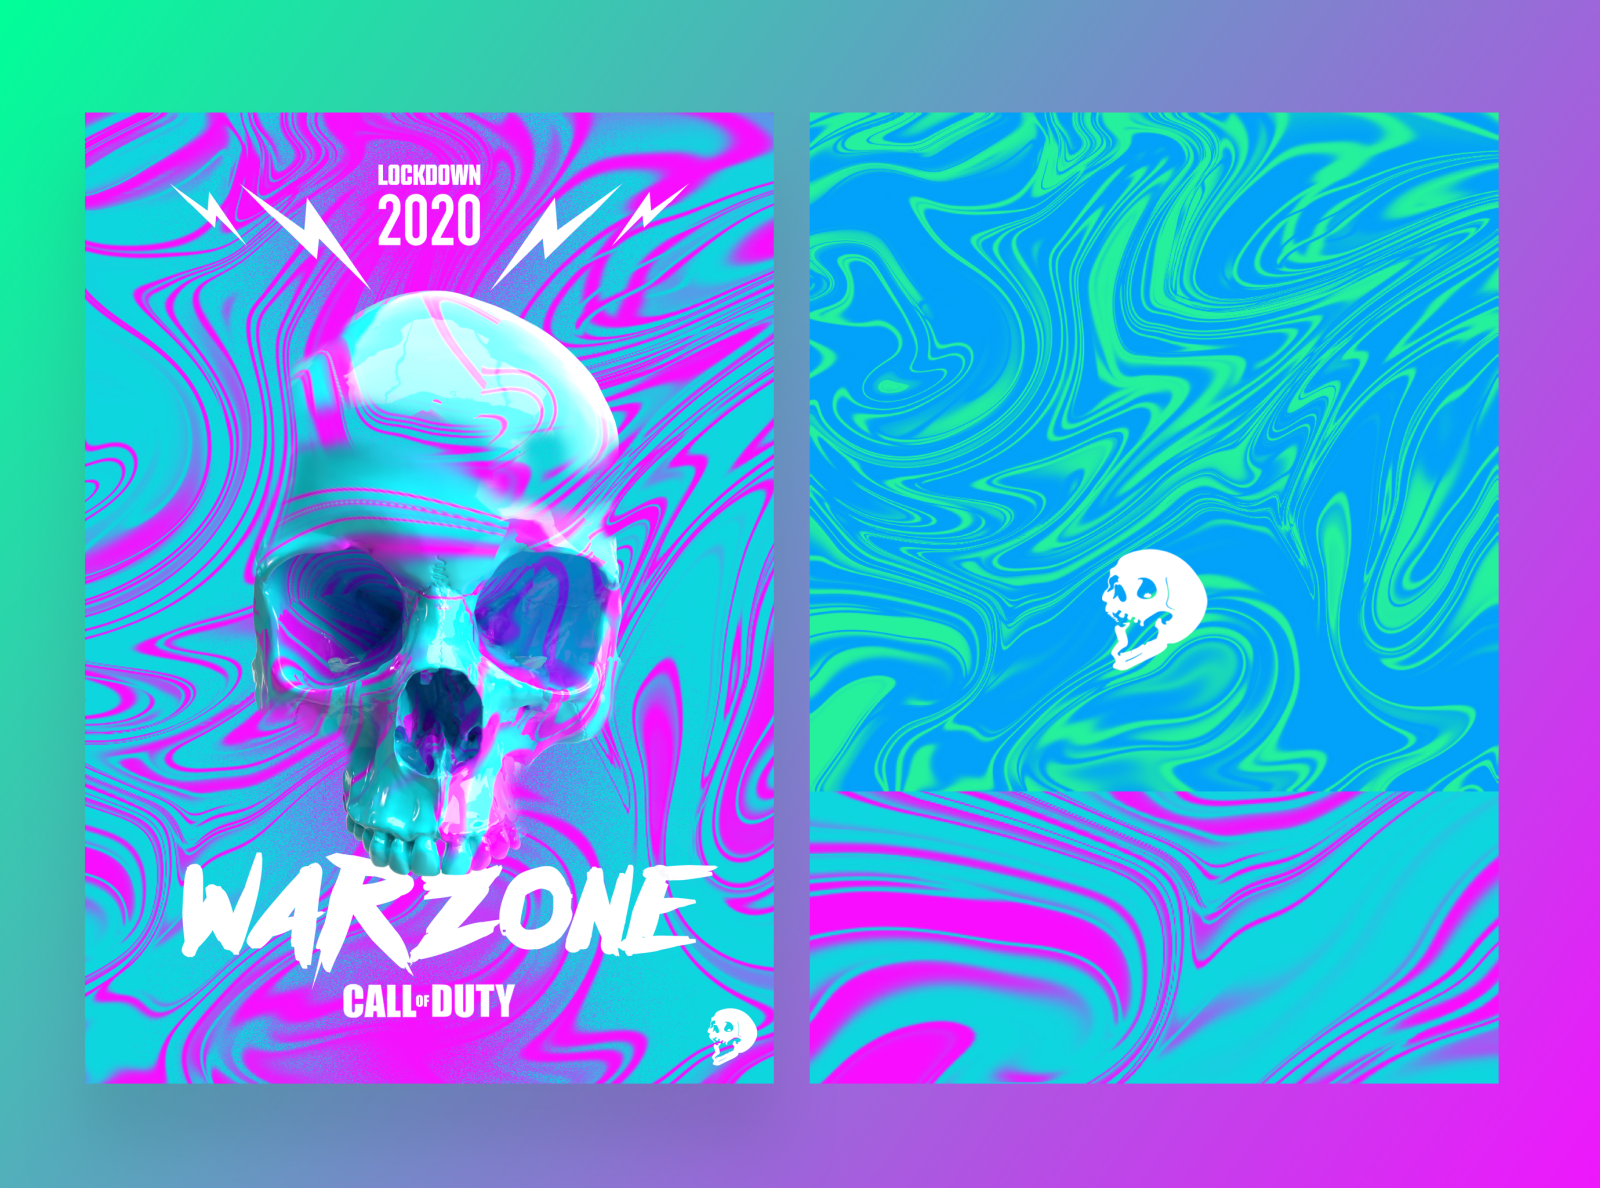 Call Of Duty Warzone Acid Wave Camo By Christopher Richards On Dribbble